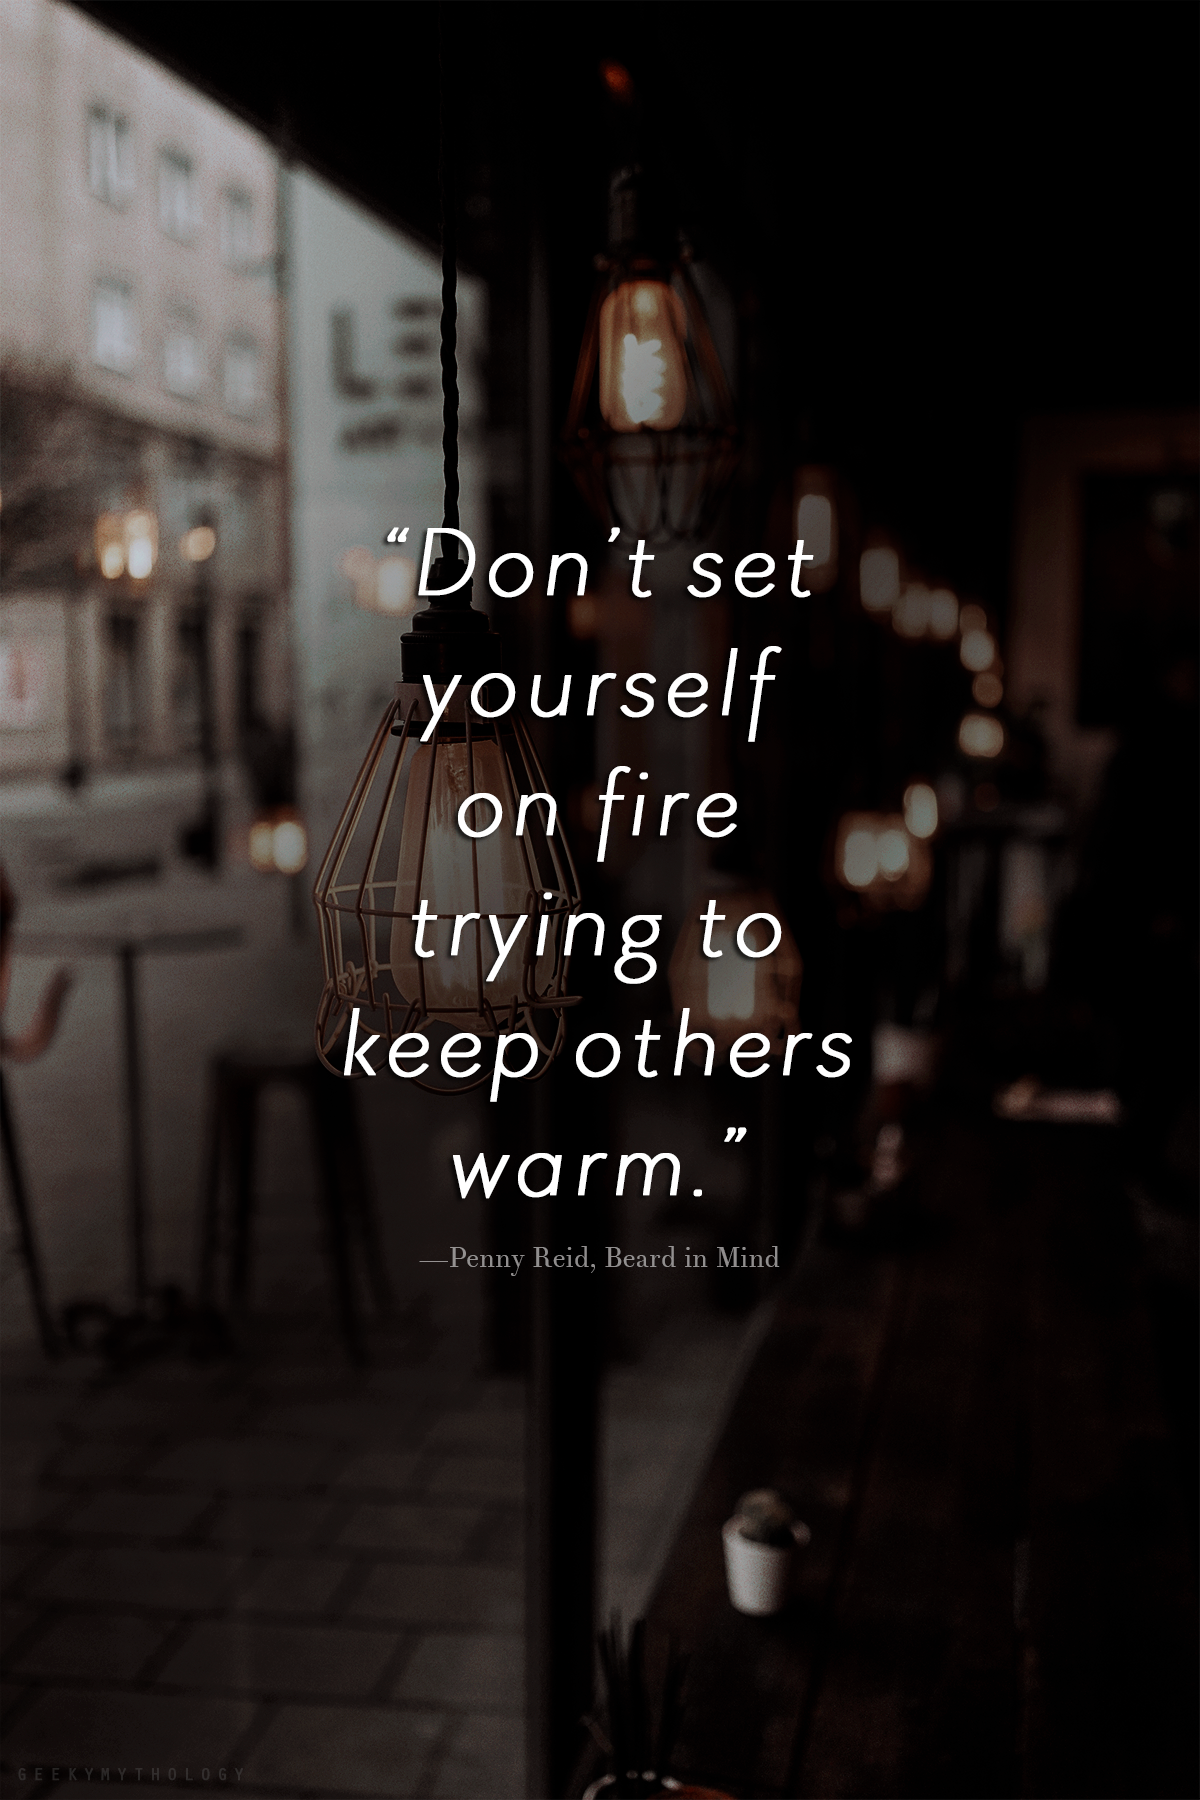 Don't set yourself on fire trying to keep others warm.